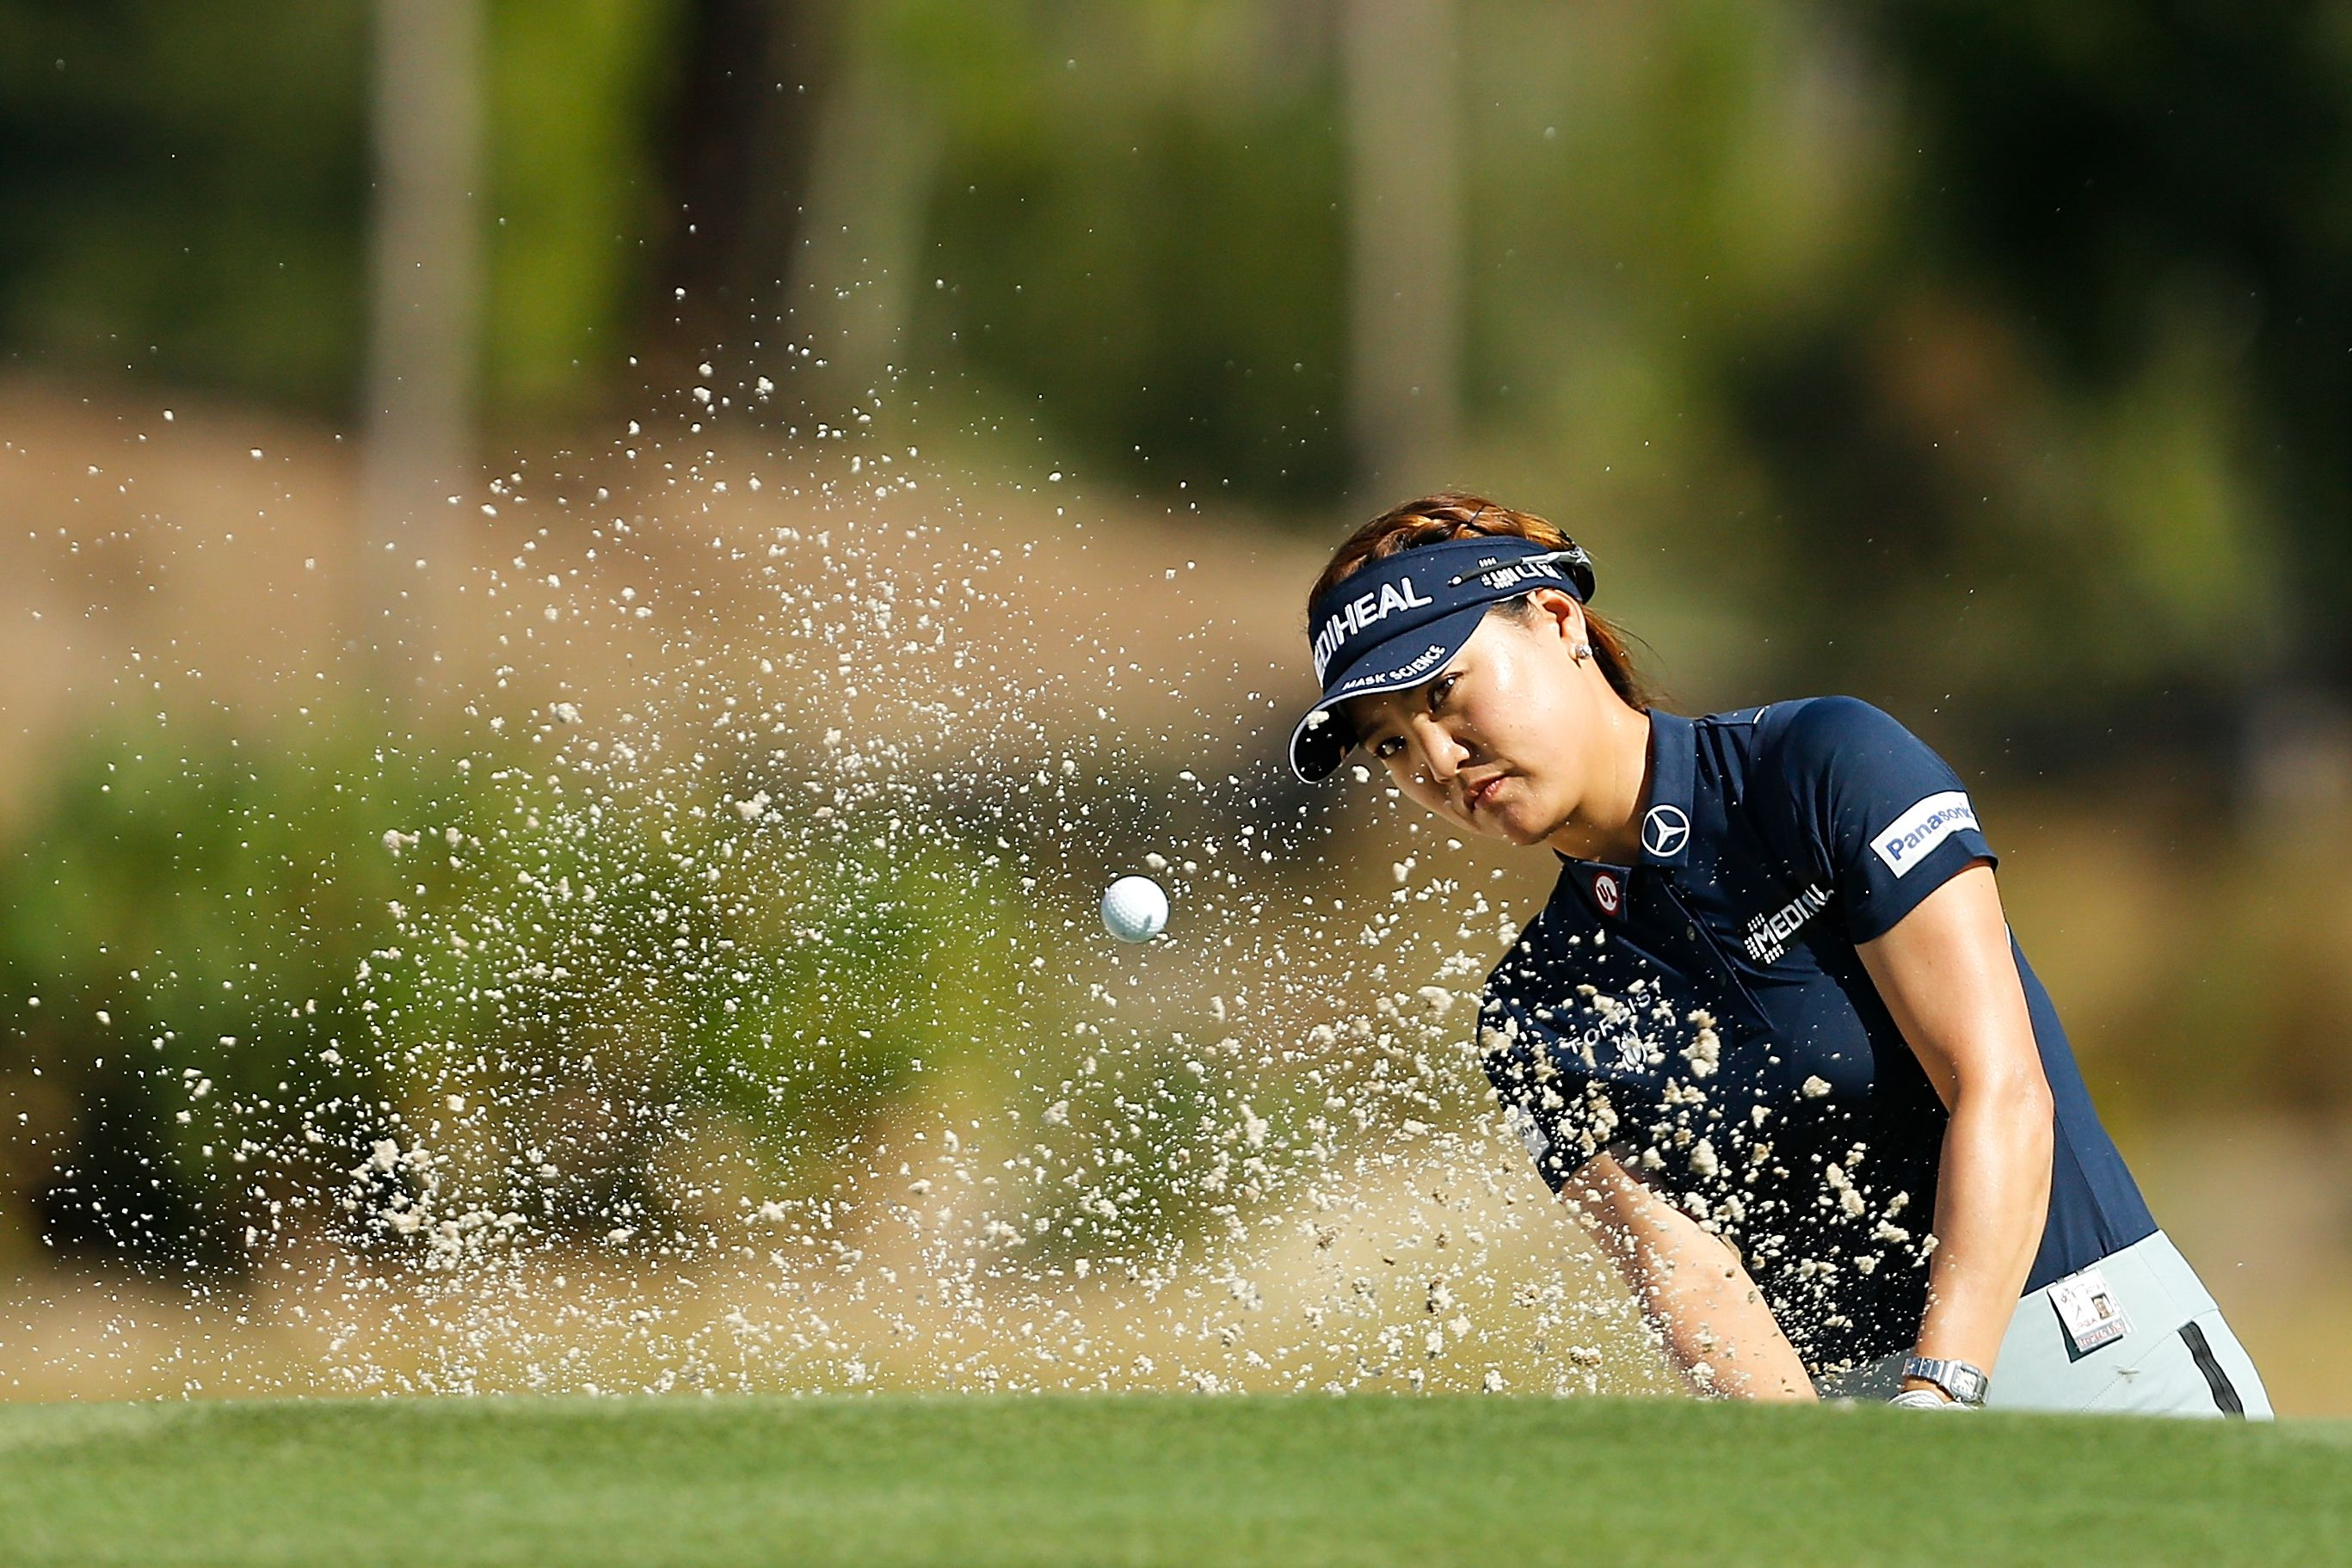 Golfer So Yeon Ryu plays a bunker shot during the 2018 CME Group Tour Championship.